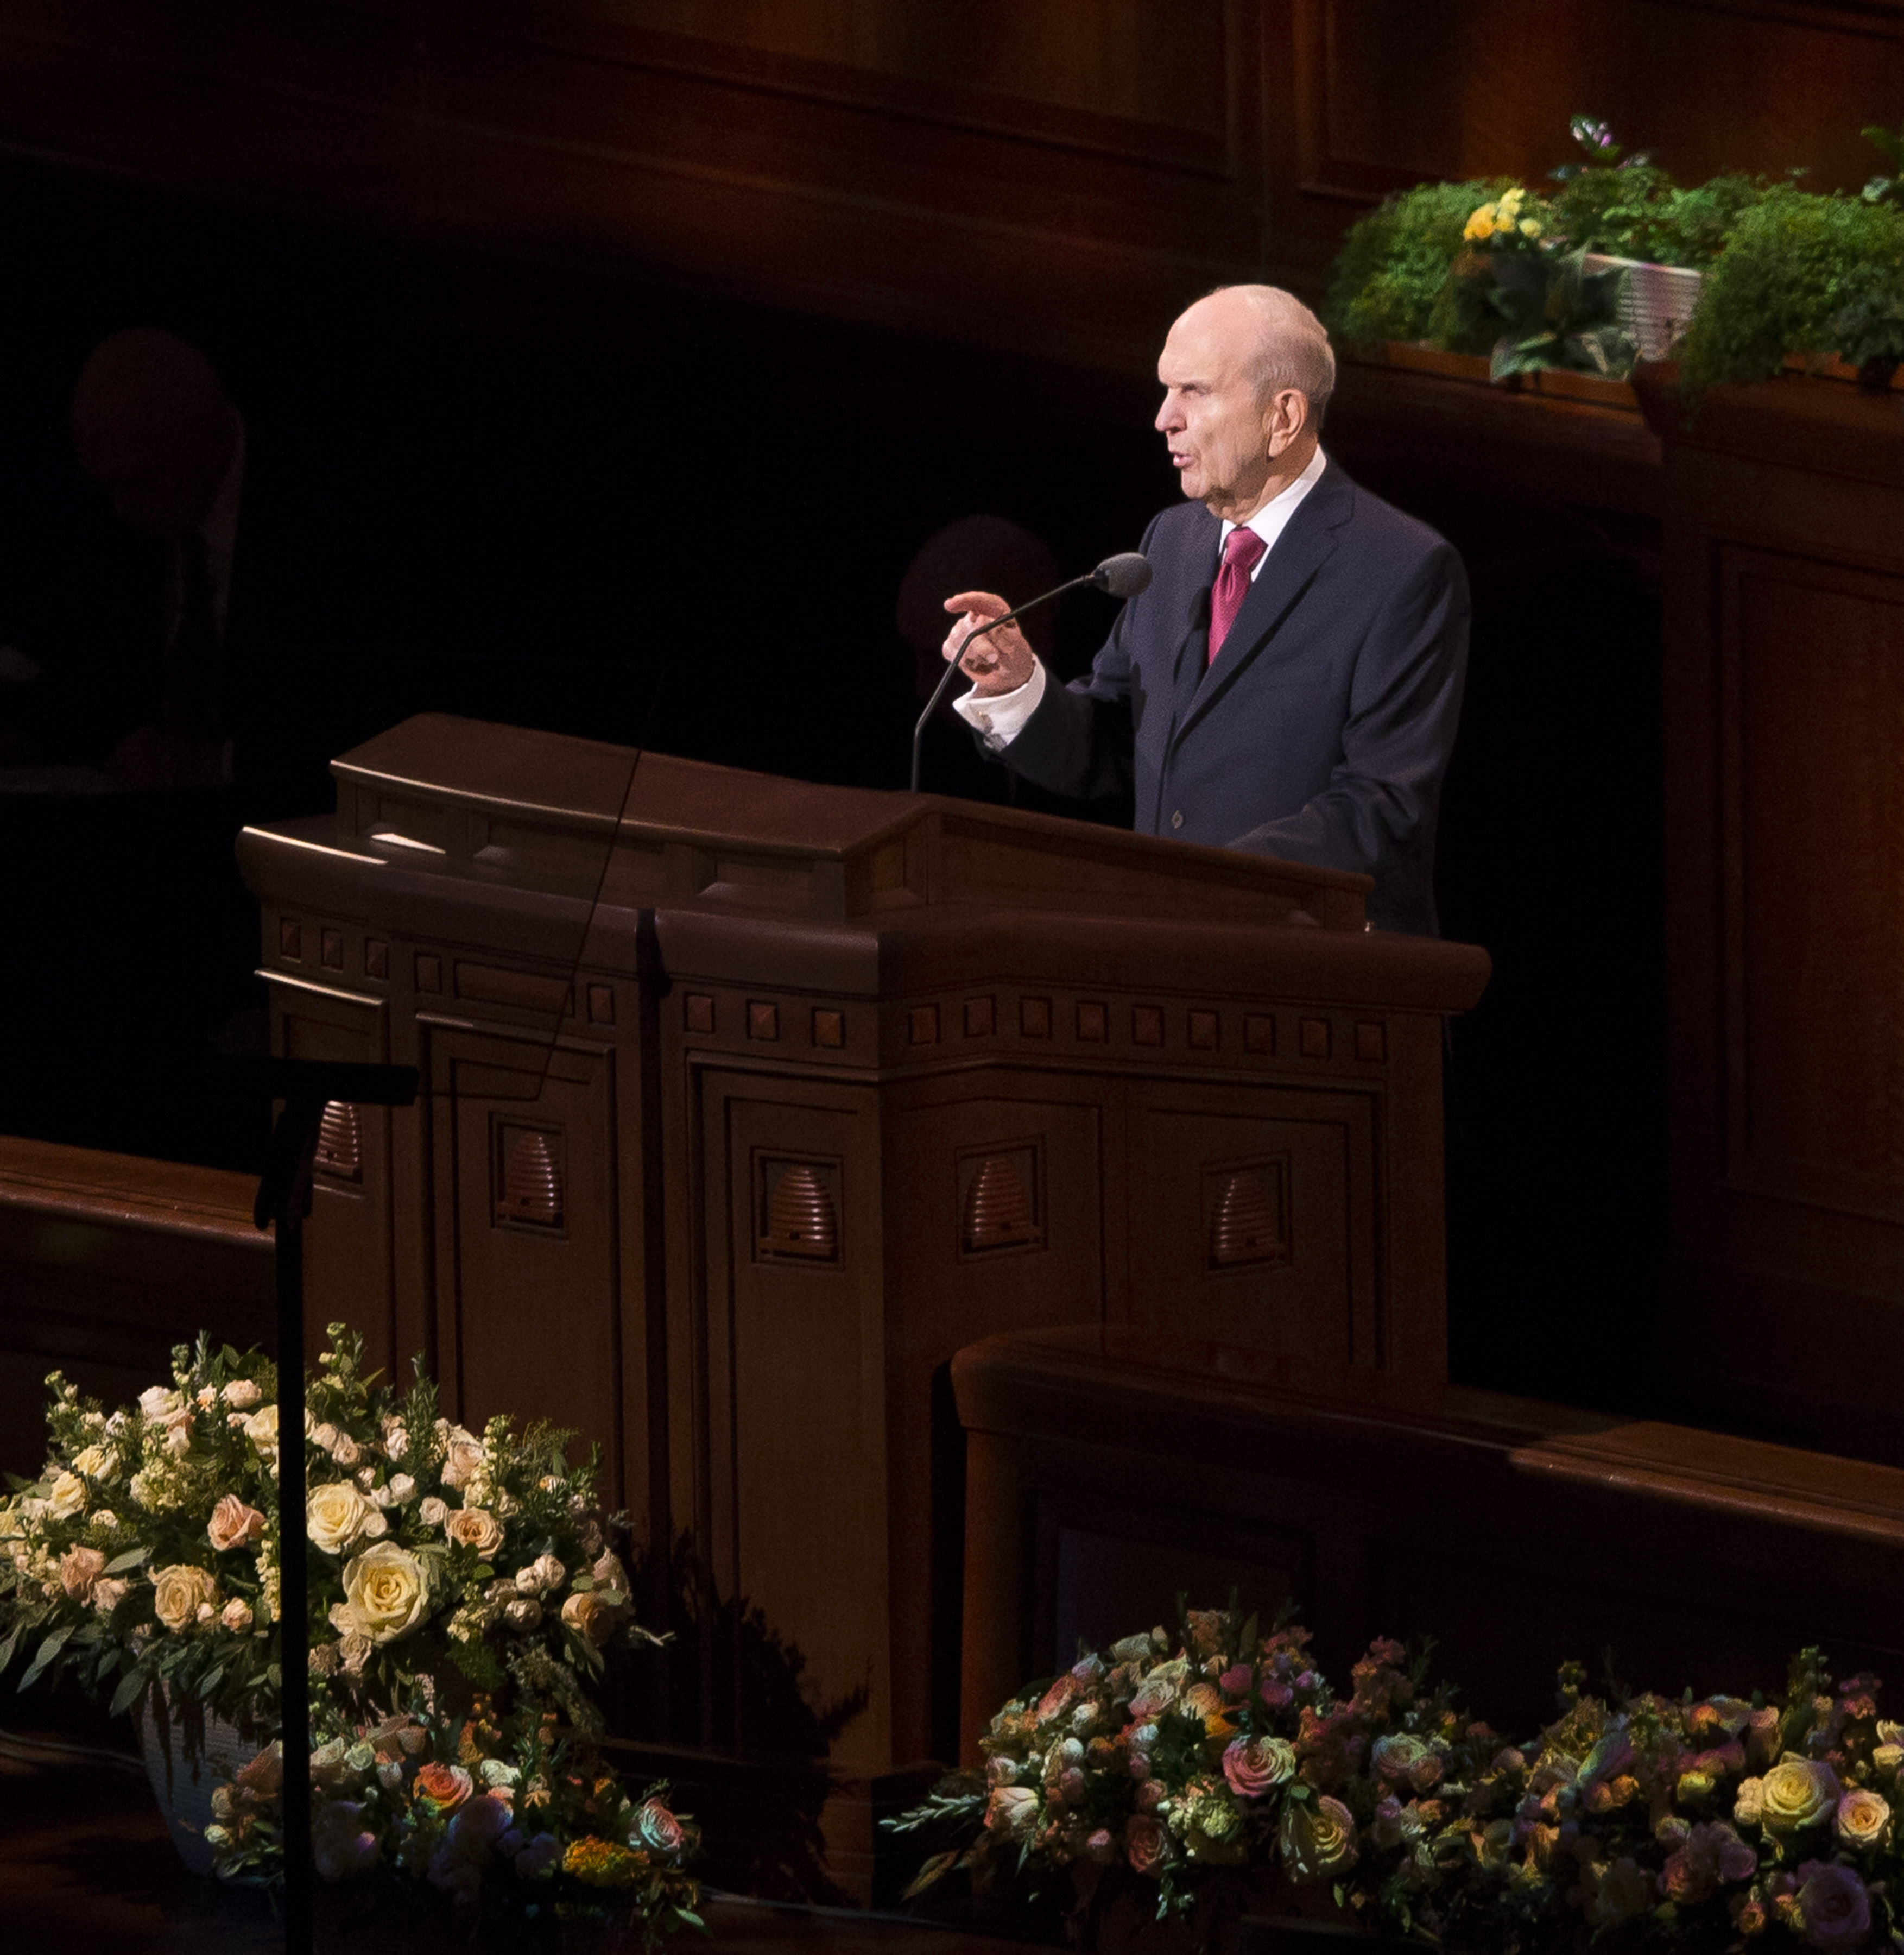 Church President Russell M. Nelson speaks during the 188th Annual General Conference of The Church of Jesus Christ of Latter-day Saints in the Conference Center in Salt Lake City on Sunday, April 1, 2018.